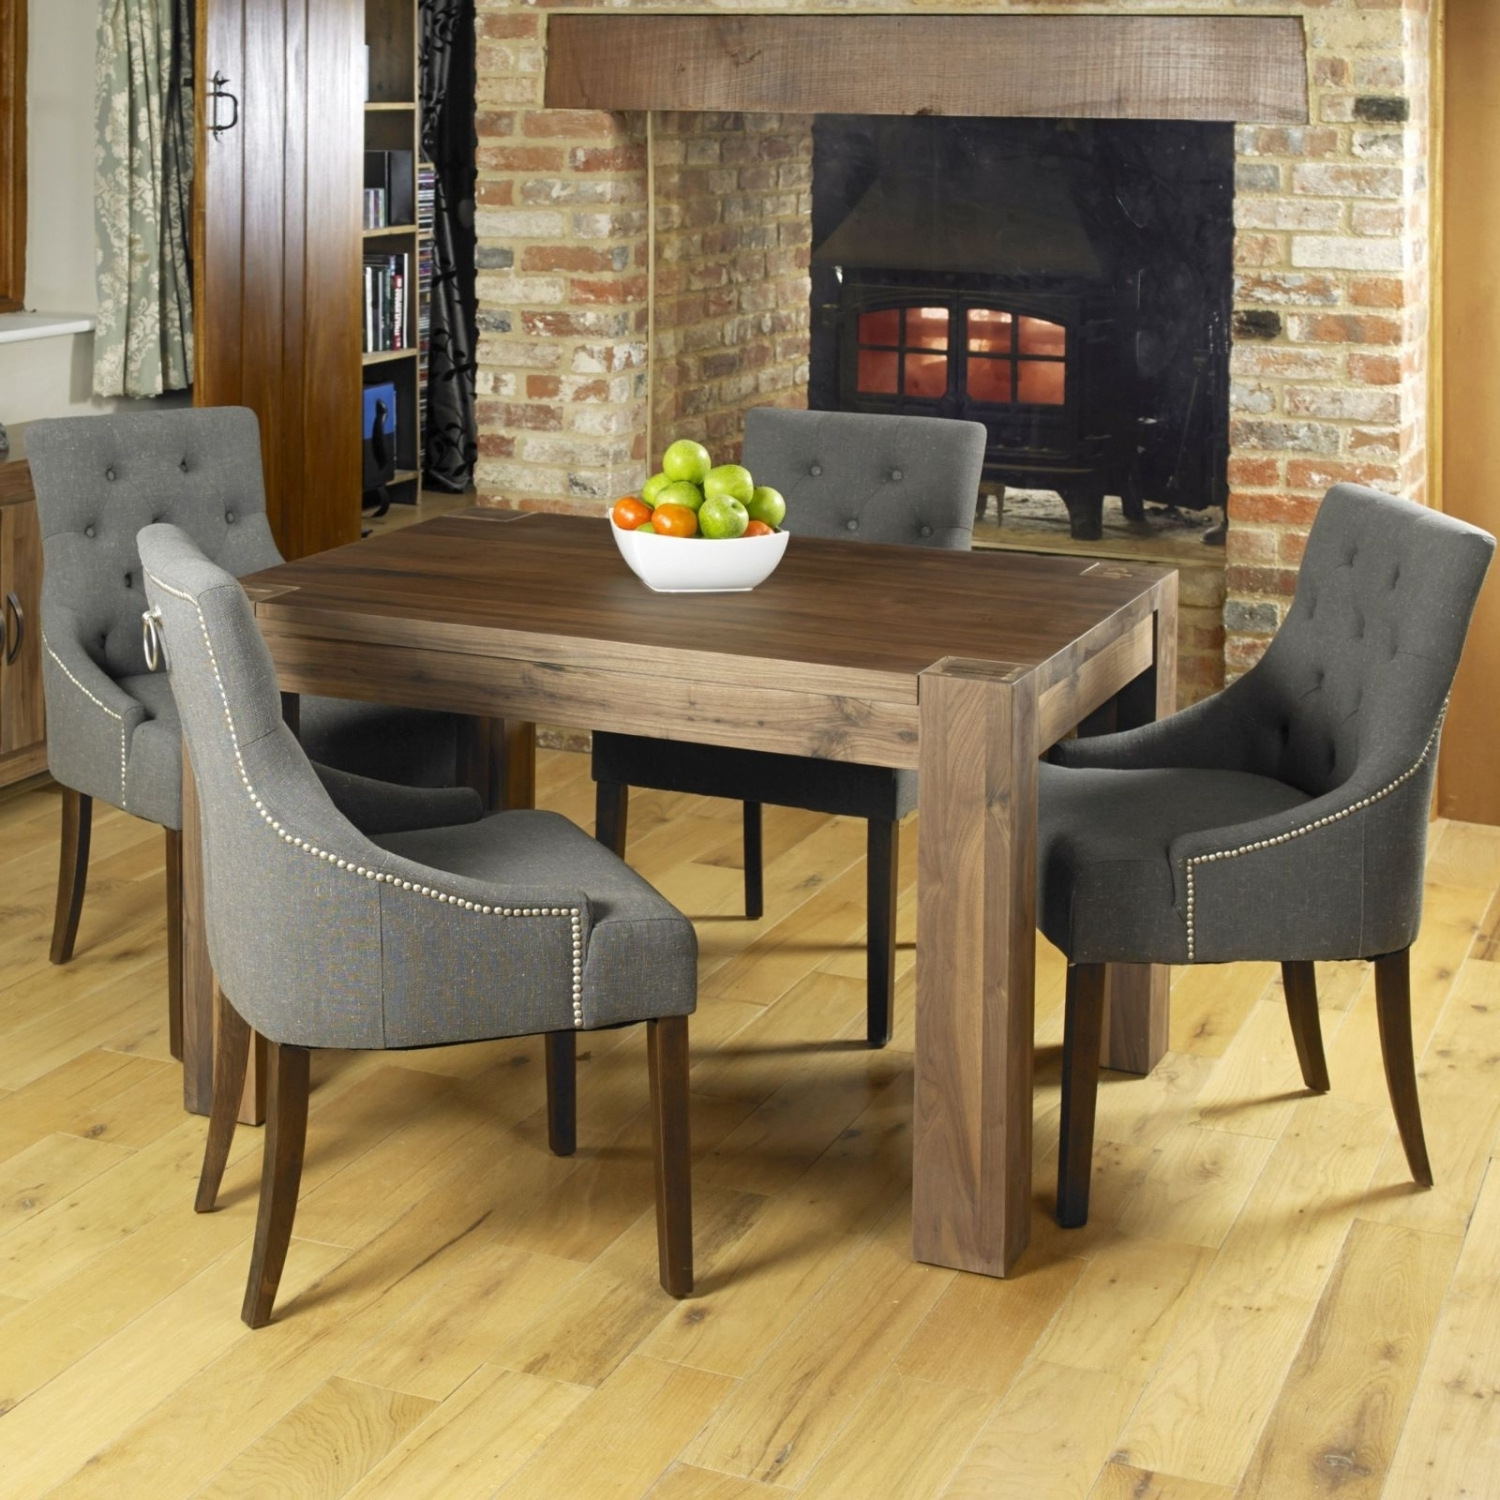 Dark Wooden Dining Tables Pertaining To Most Up To Date Strathmore Walnut Dark Wood Modern Furniture Dining Table And Four (View 9 of 25)